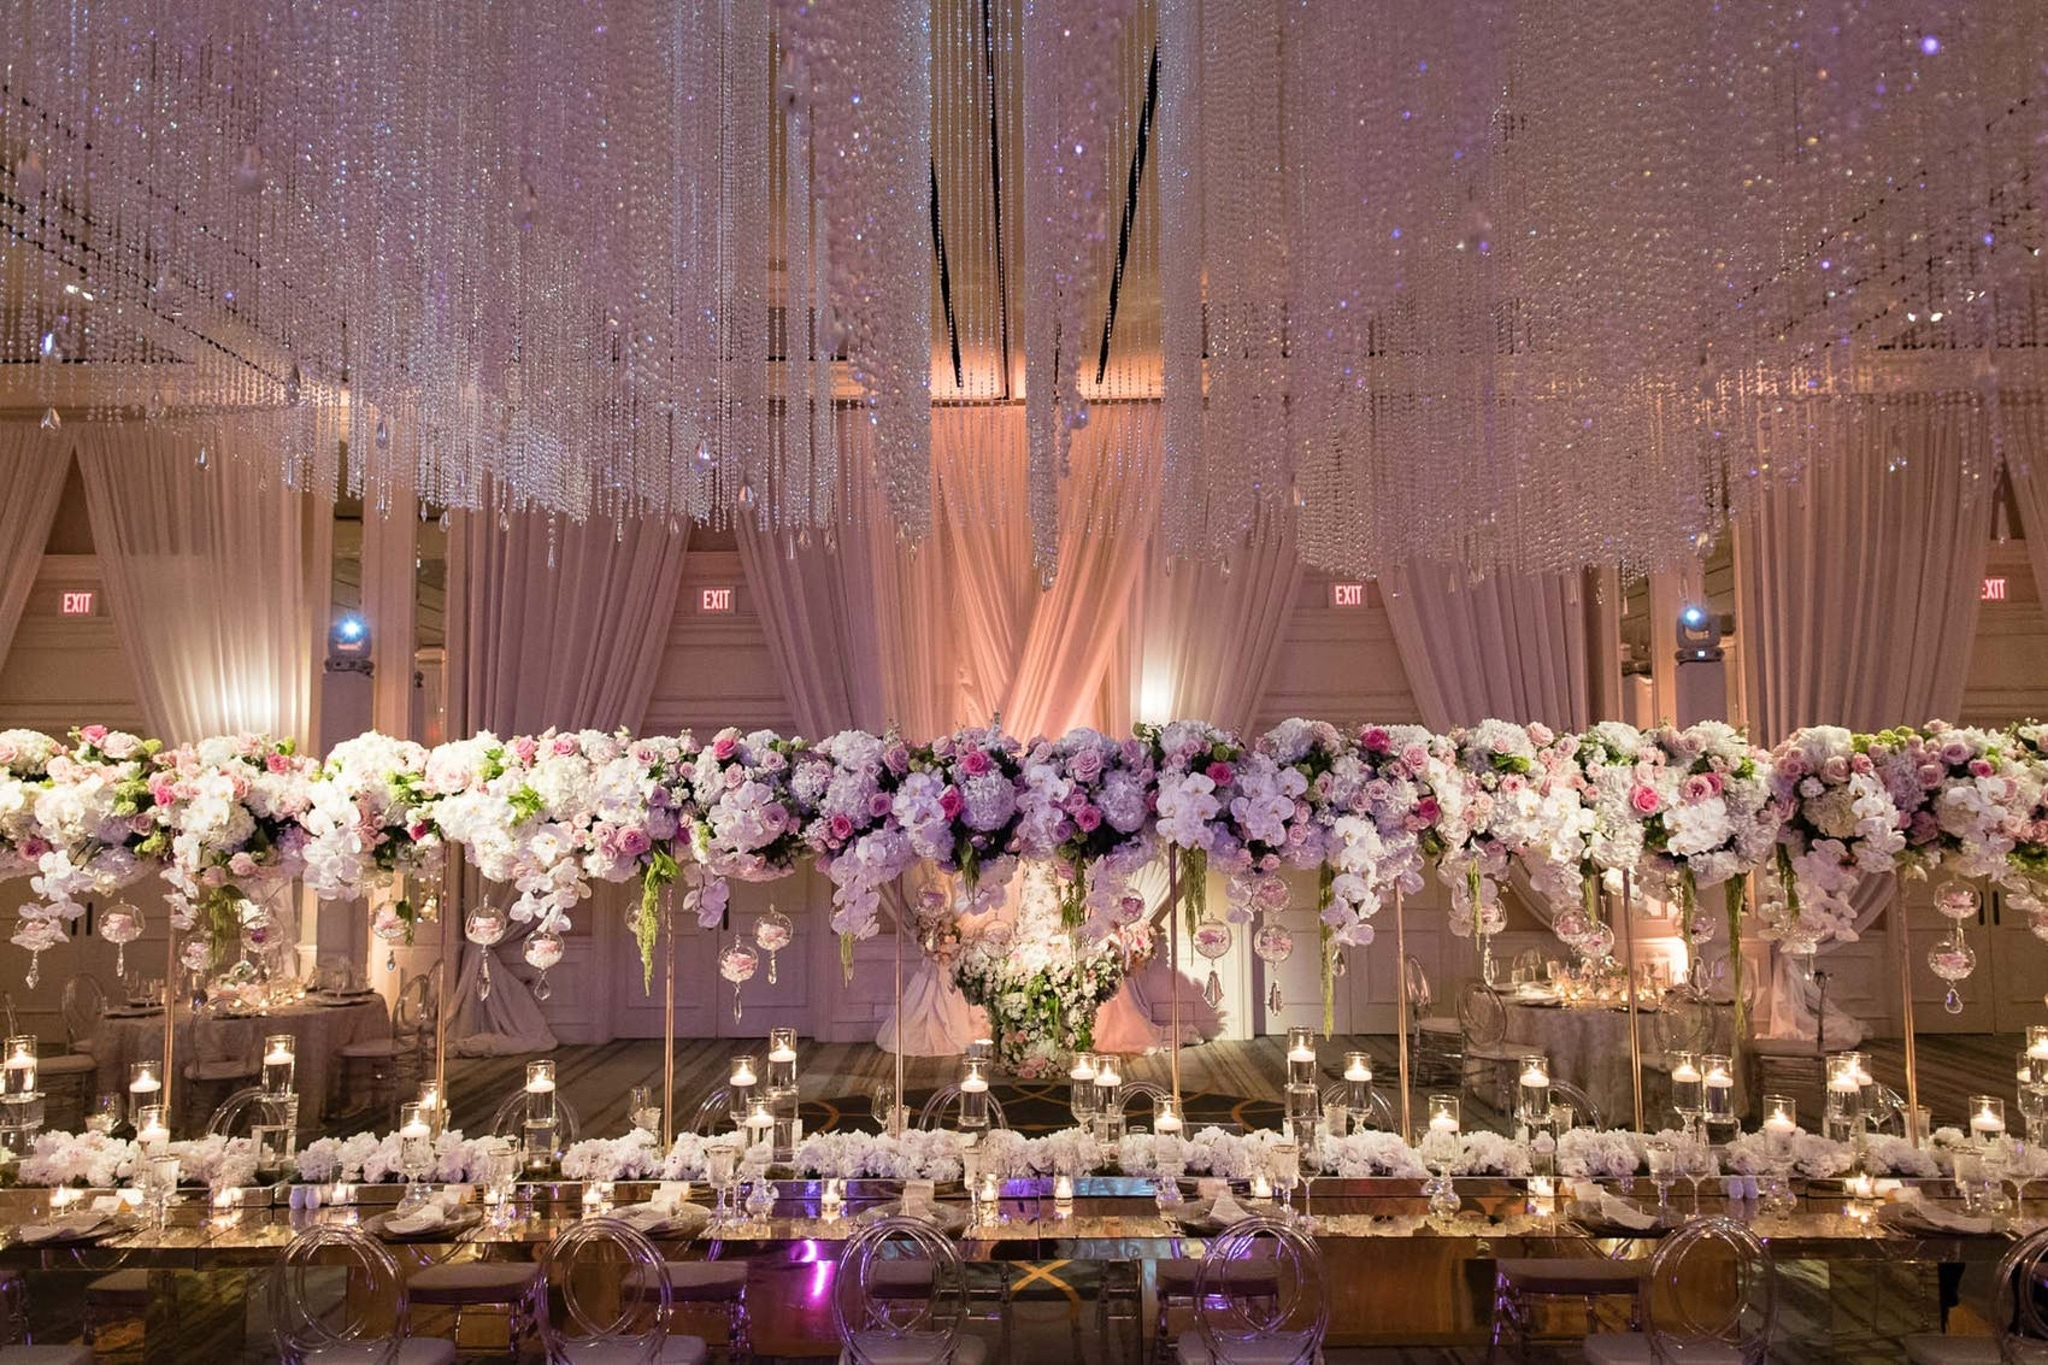 tabletop dressed in low alabaster florals and sparkling candlelight